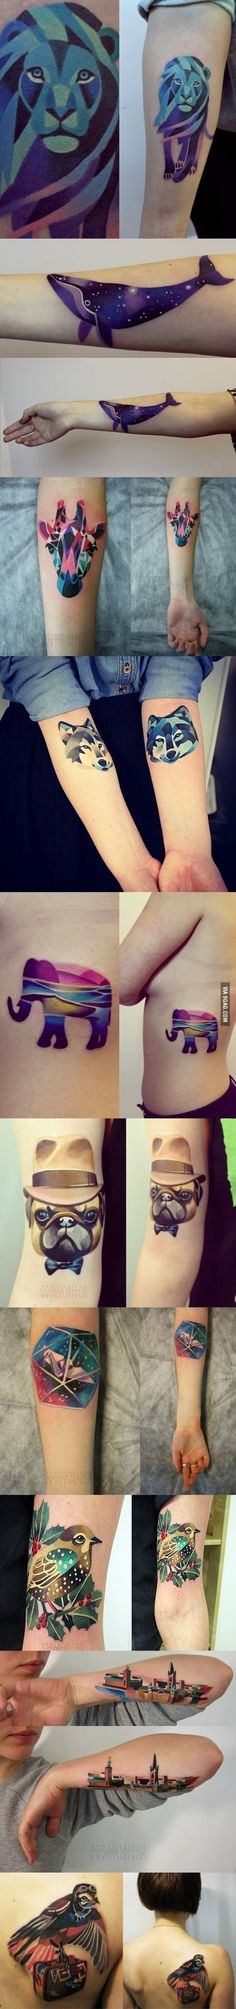 All of these are awesome tattoo designs